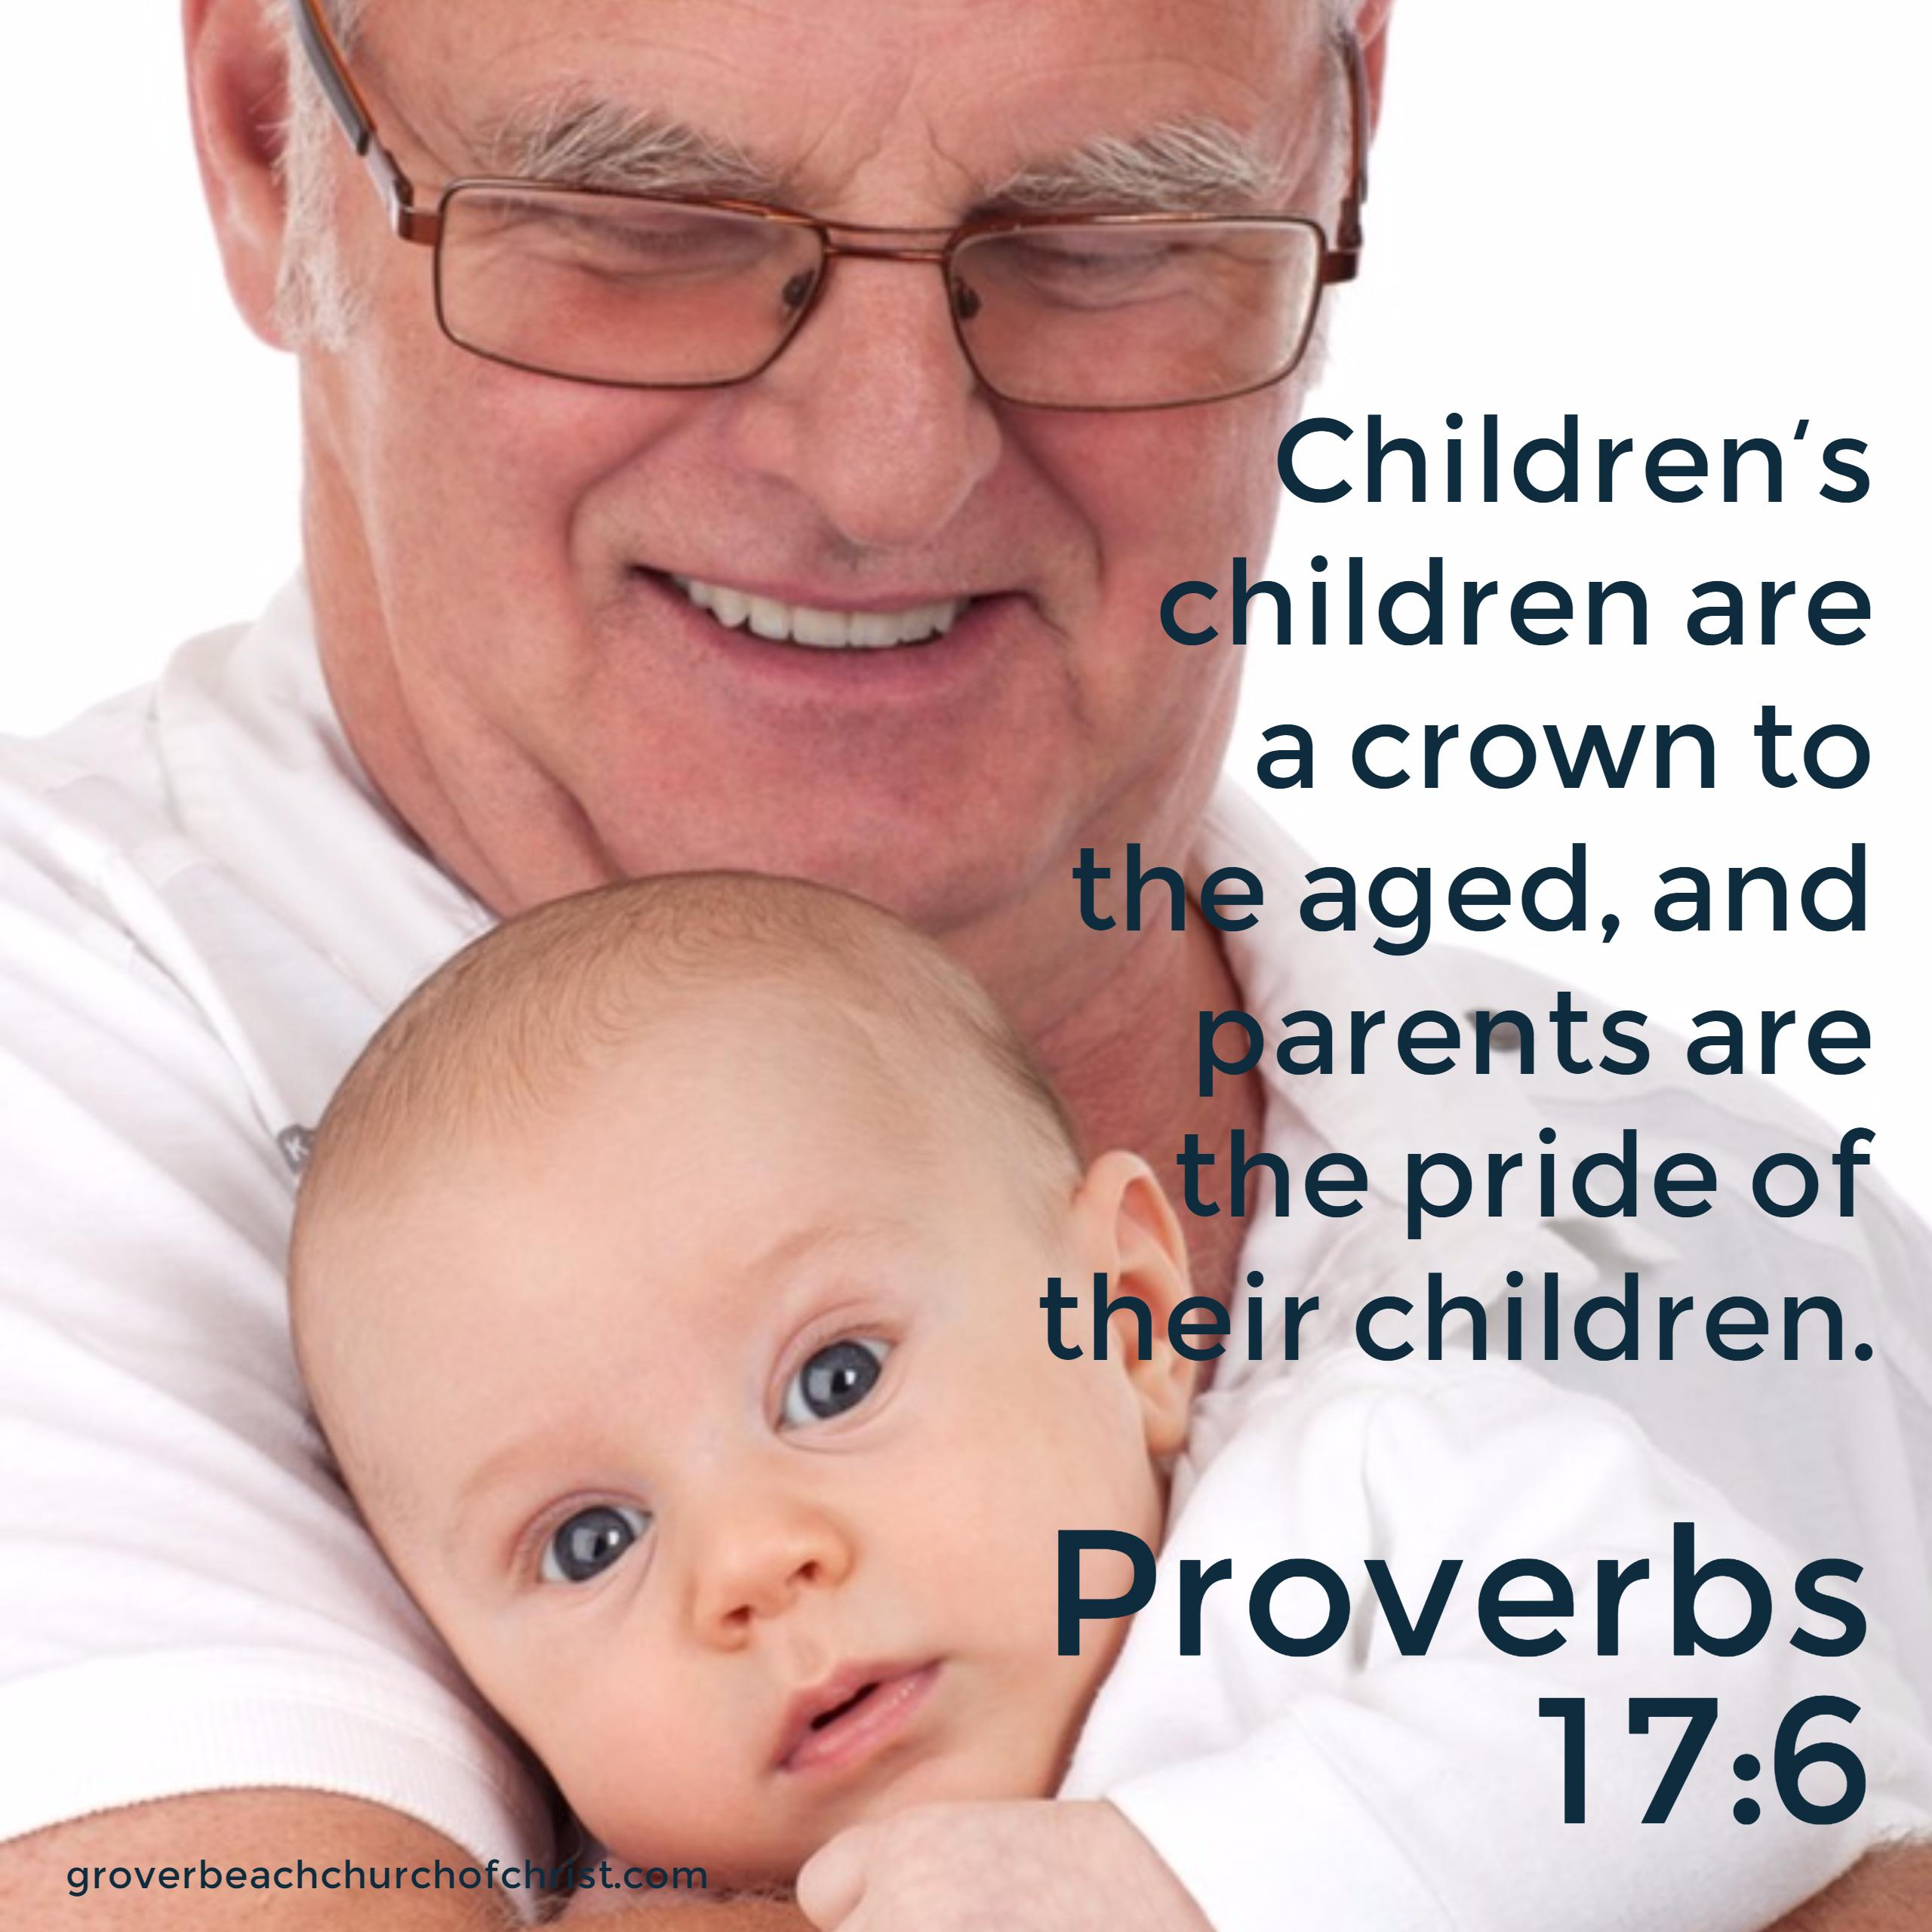 Proverbs 17-6 Children's children are a crown